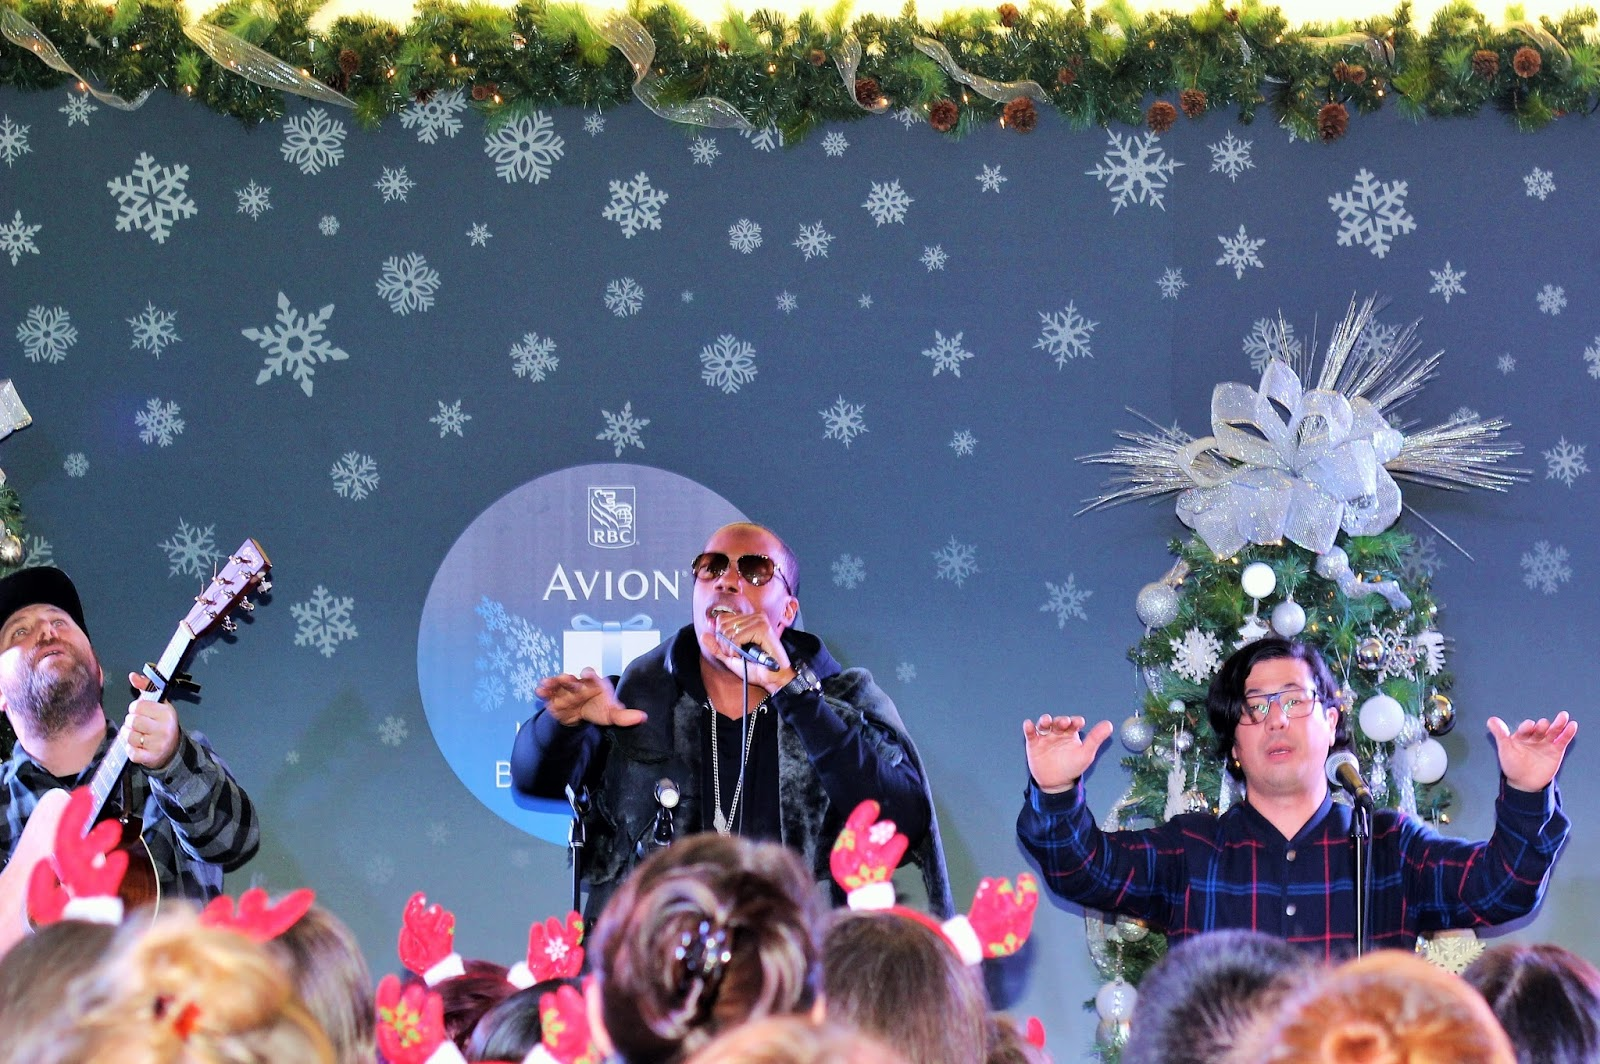 KARDINAL OFFISHALL PERFORMING AT RBC AVION BOUTIQUE LAUNCH IN YORKDALE MALL